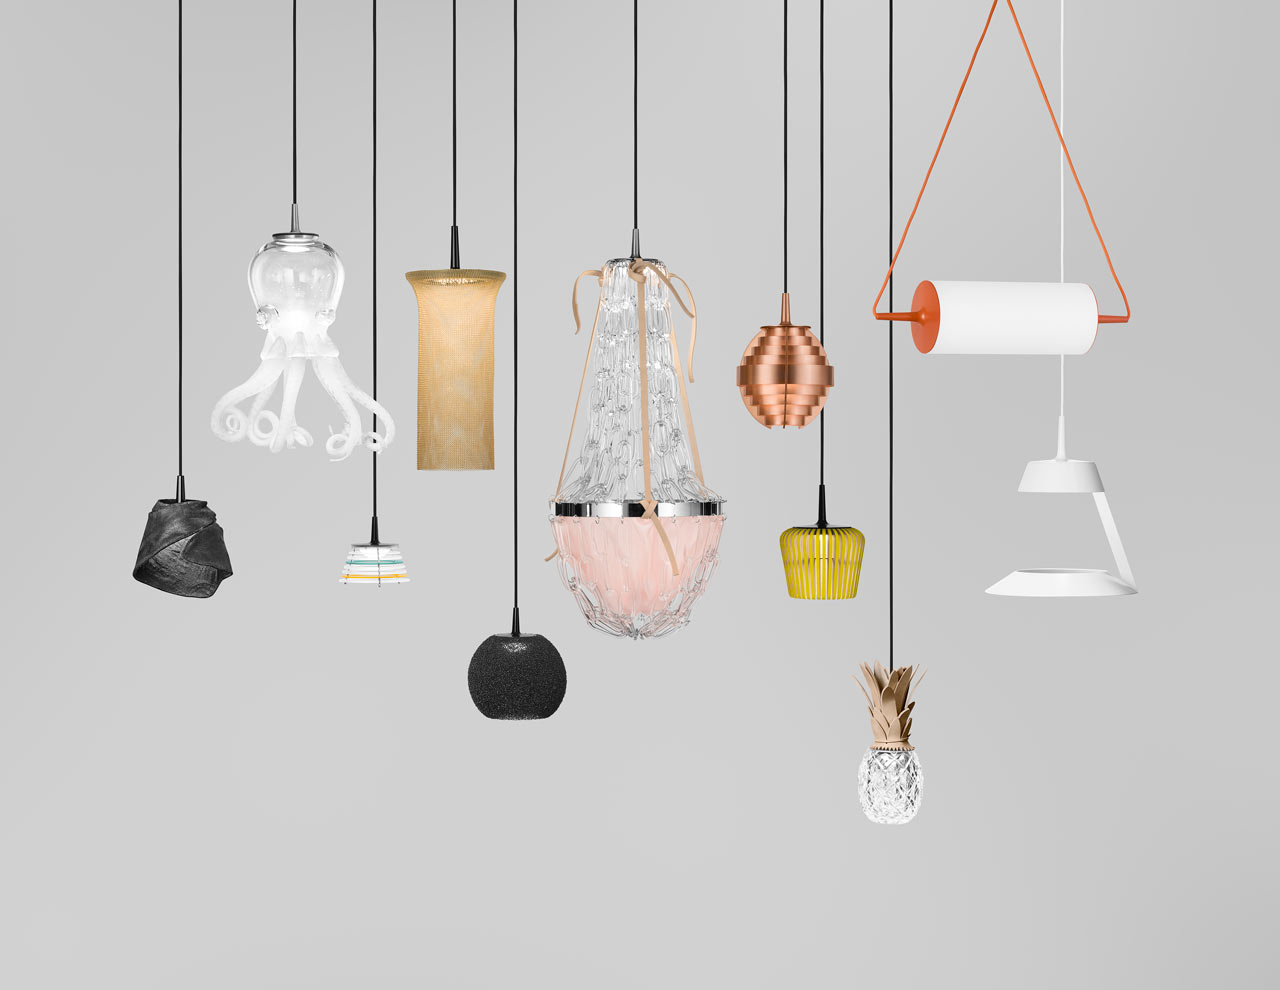 Pendant Light Engine Creates Multiple Lamps - Design Milk